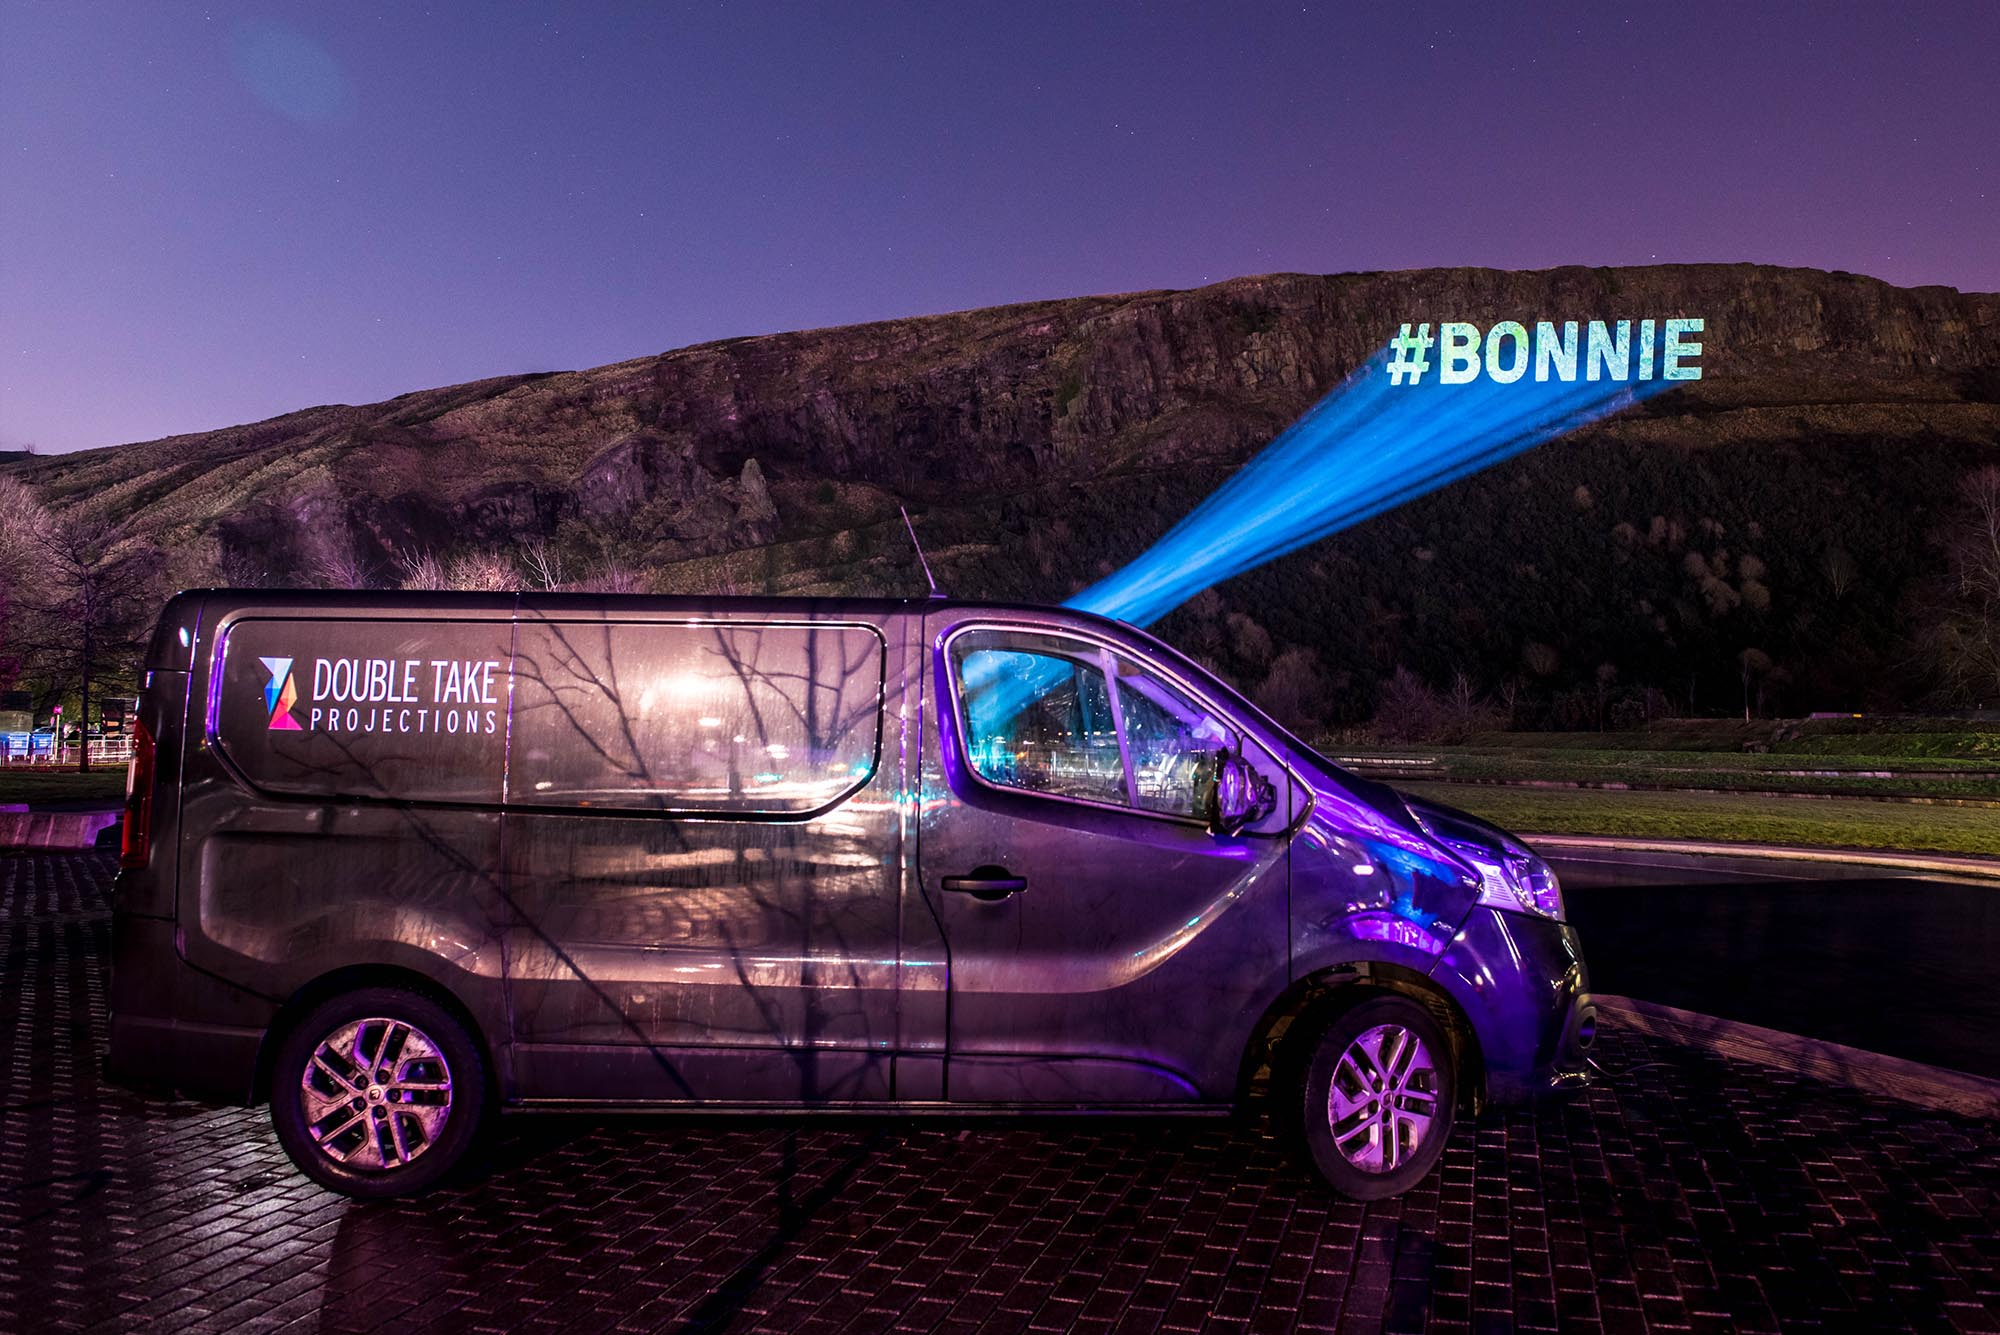 Torchlight Procession Projections, #bonnie beamed on Edinburgh Crags